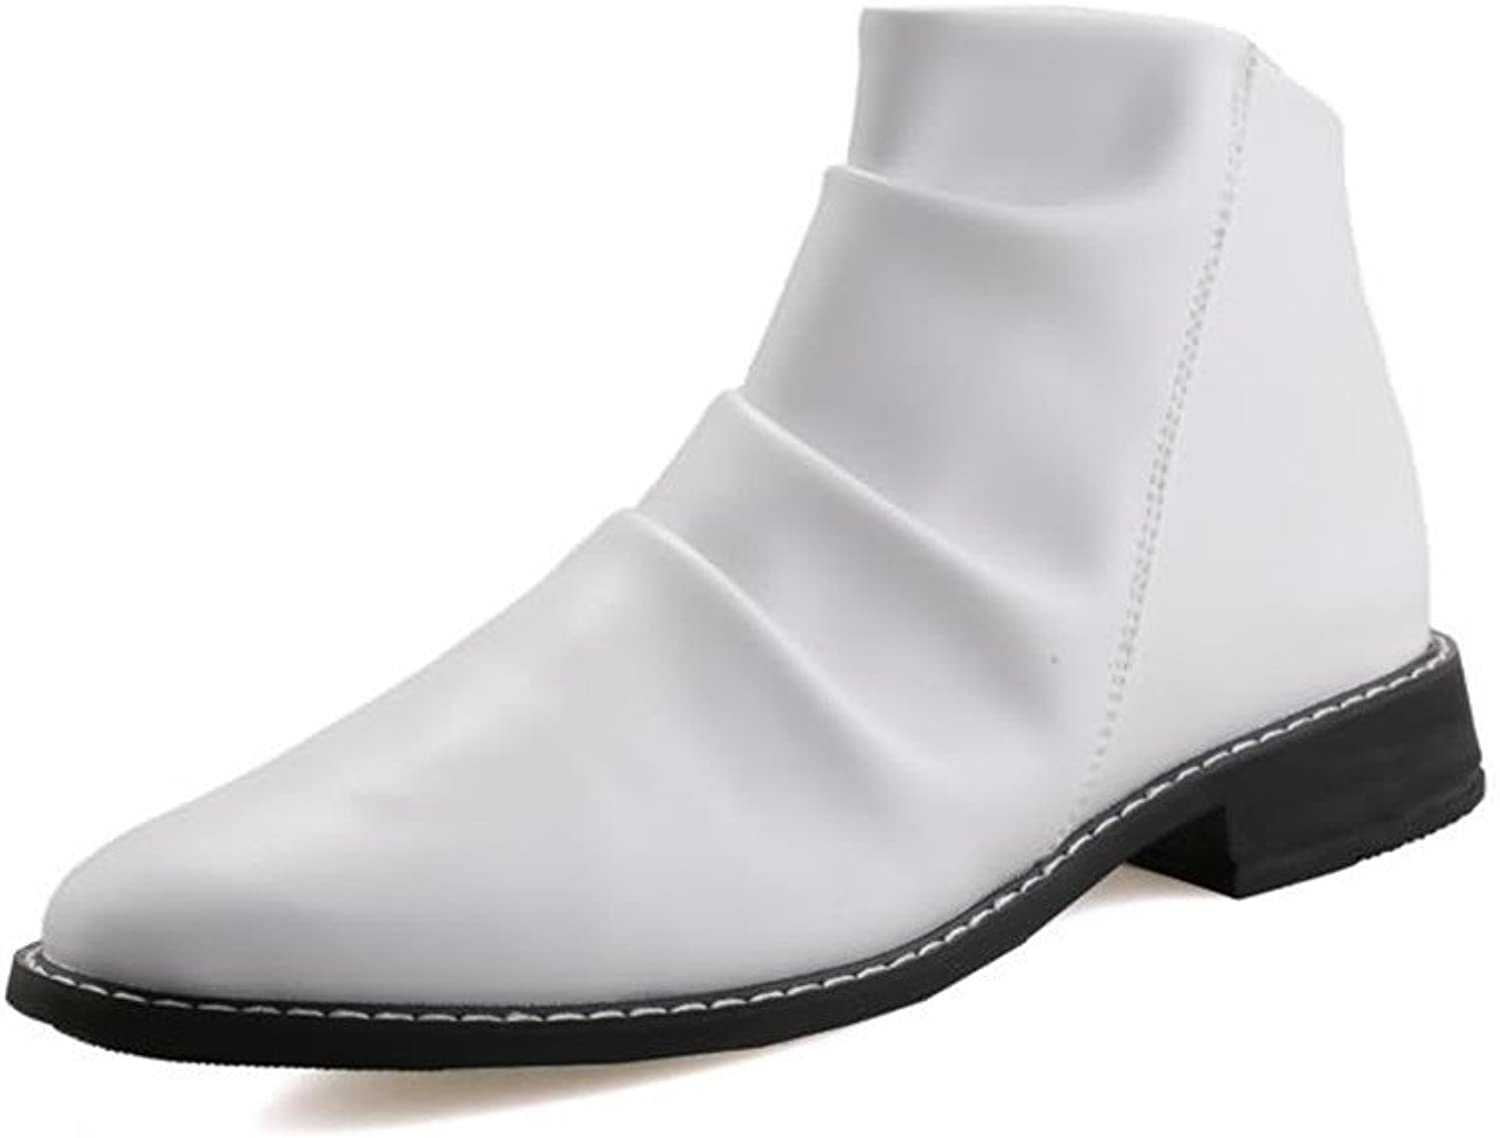 Tooling shoes Martin Boots Men's Stylish comfortable Ankle Boots Round Toe Block Heel Pull On Slouch Vamp Oxfords shoes Military High-tops Boots (color   White, Size   7.5 UK)